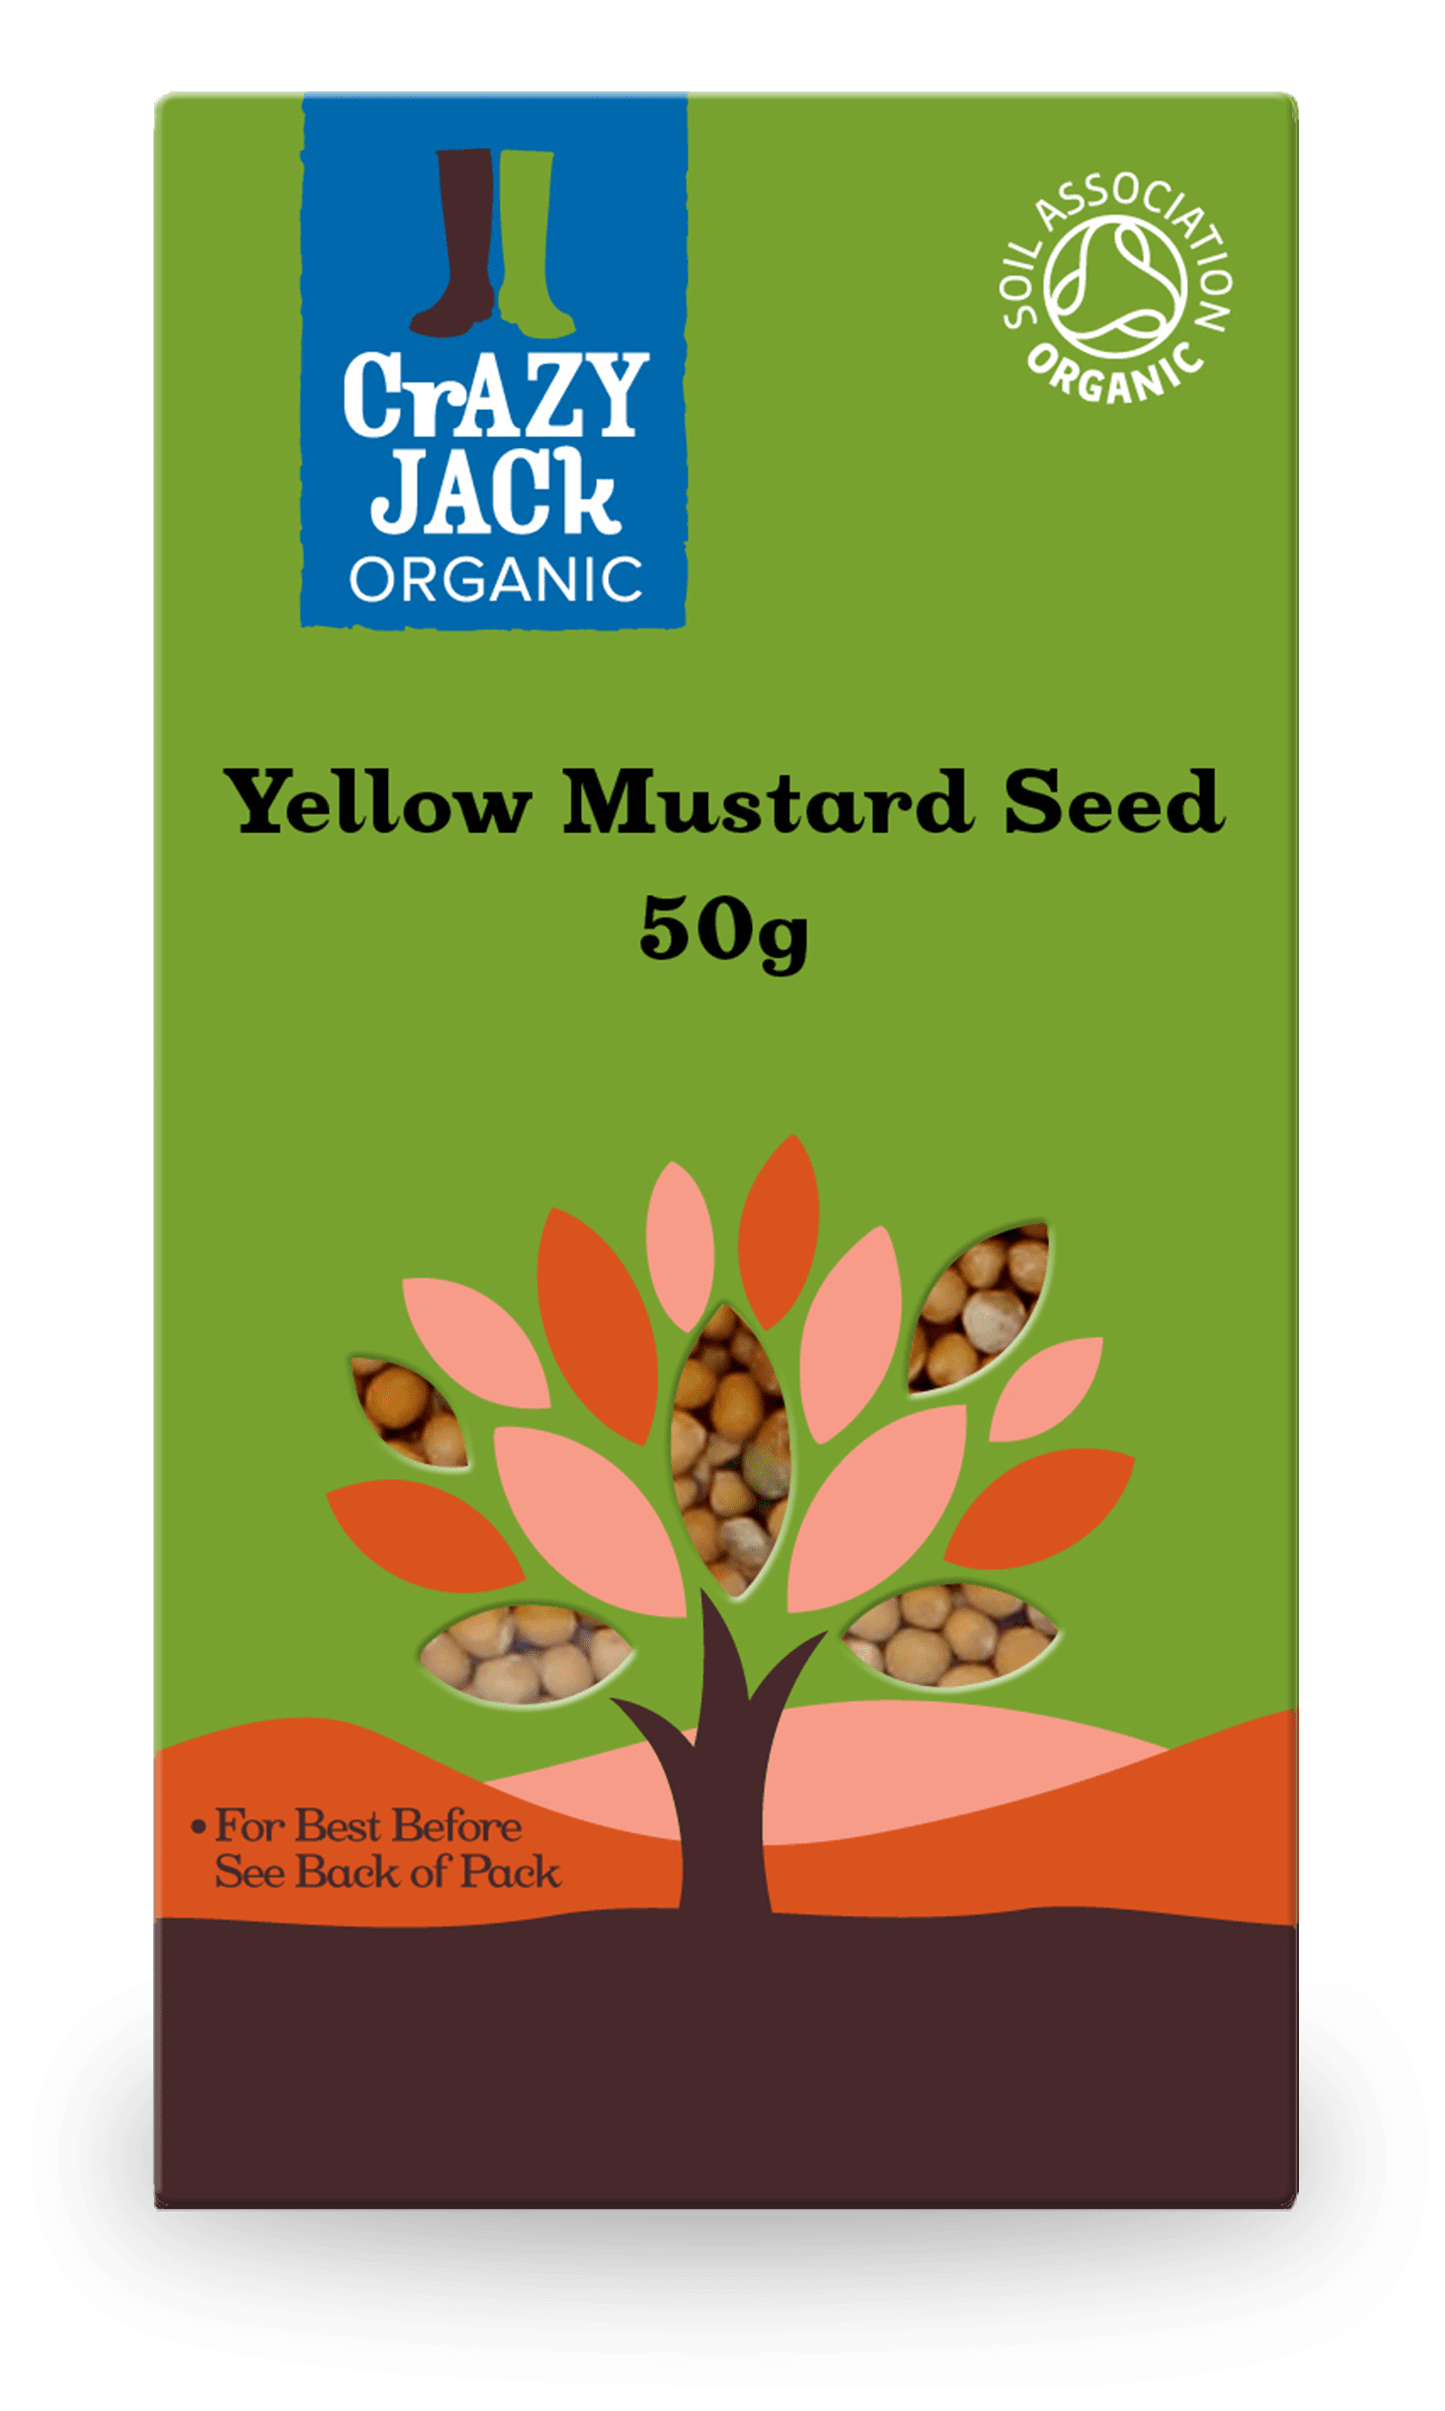 50g packet of yellow mustard seed